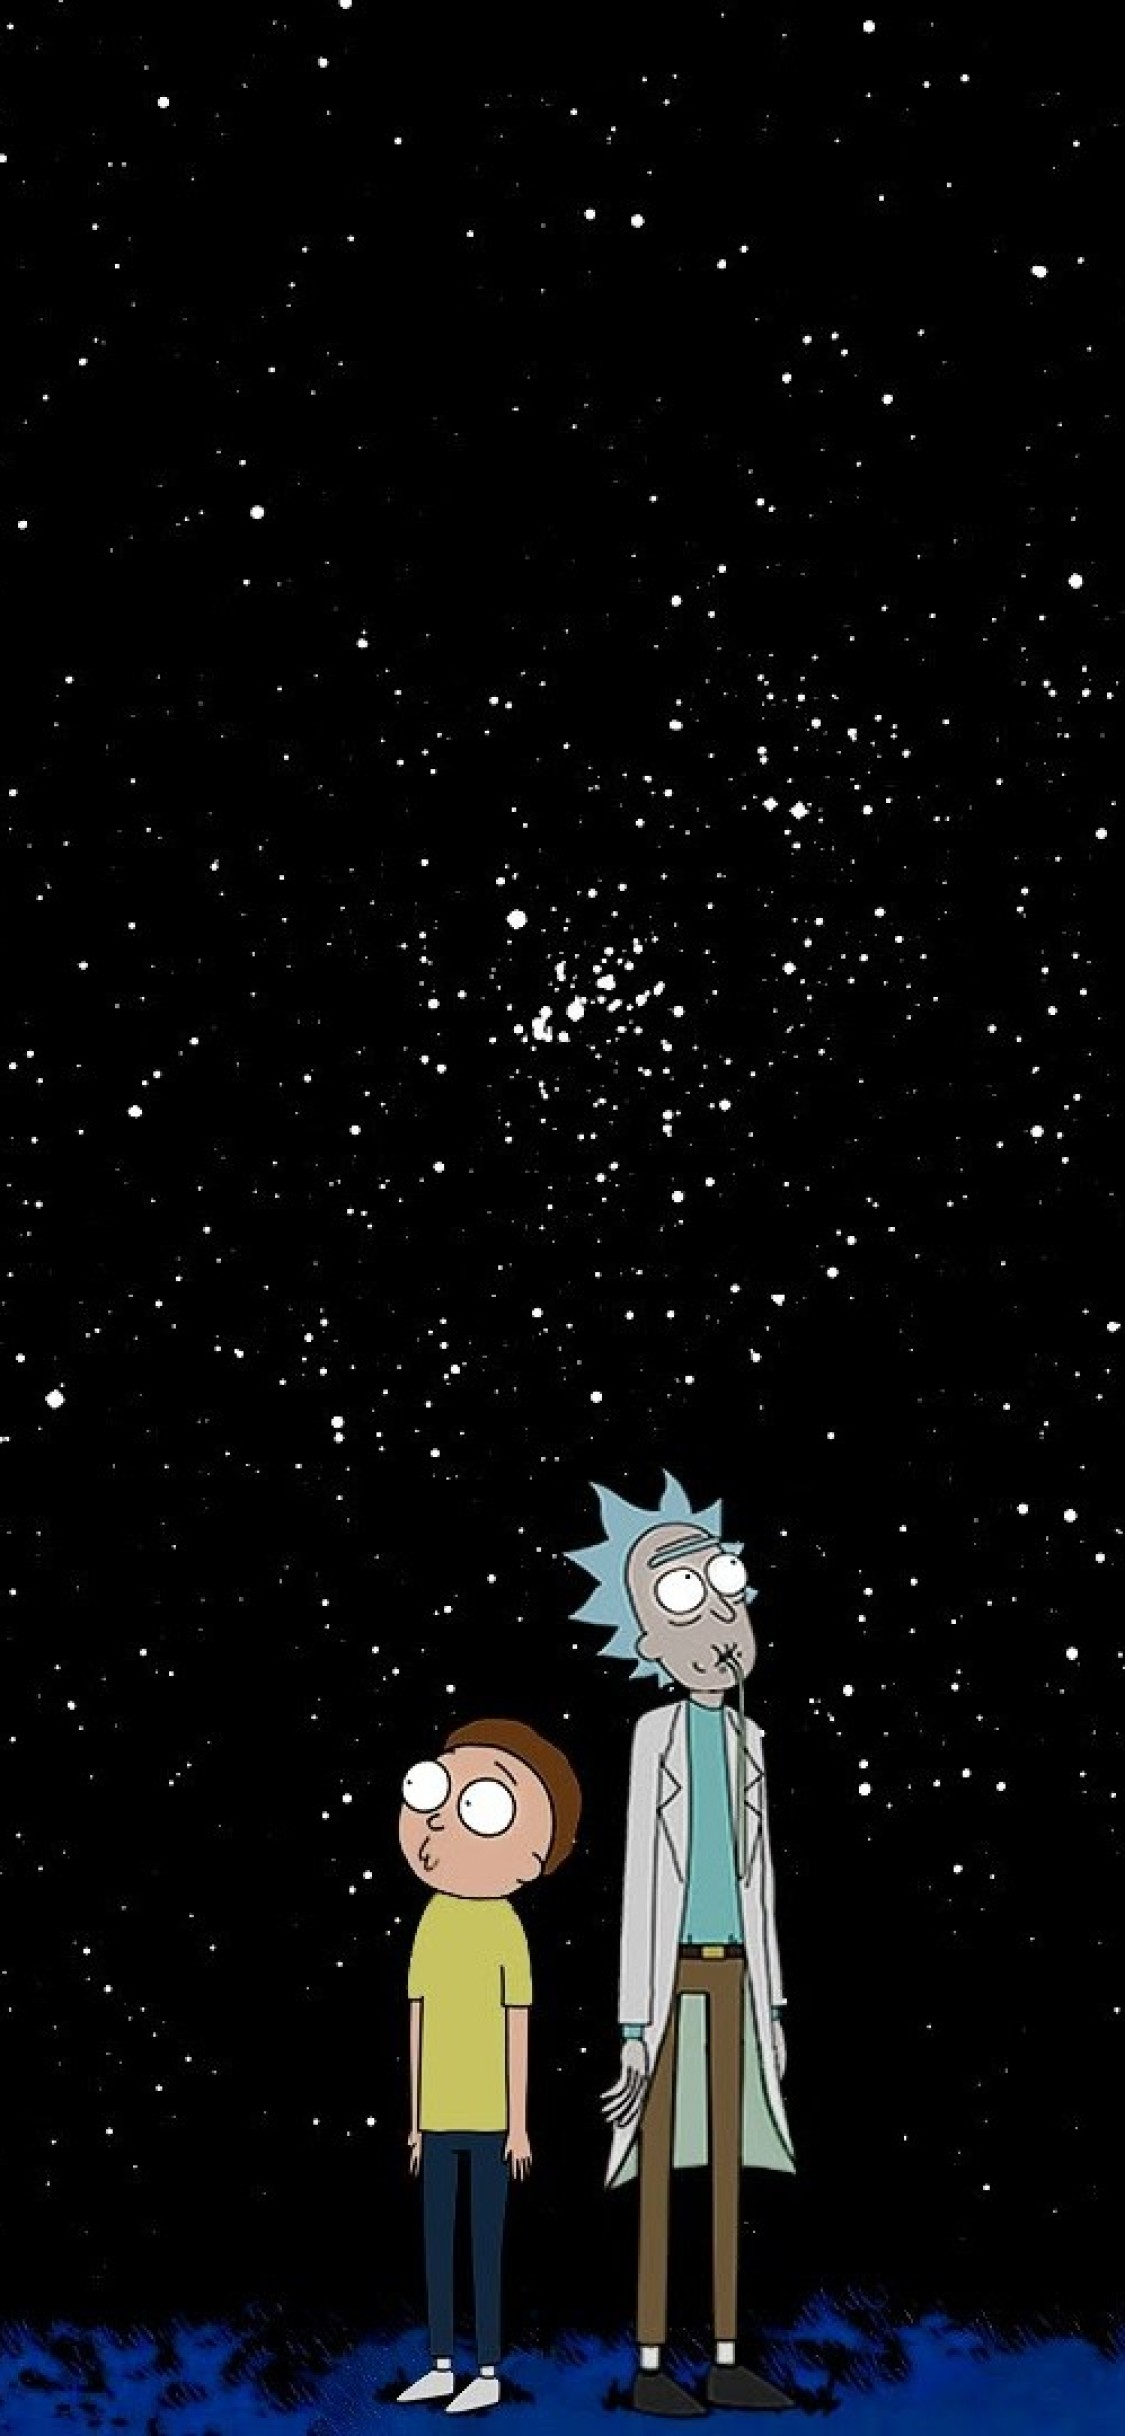 Rick And Morty Hd Iphone Xs 10 X 4k Rick And Morty Wallpaper